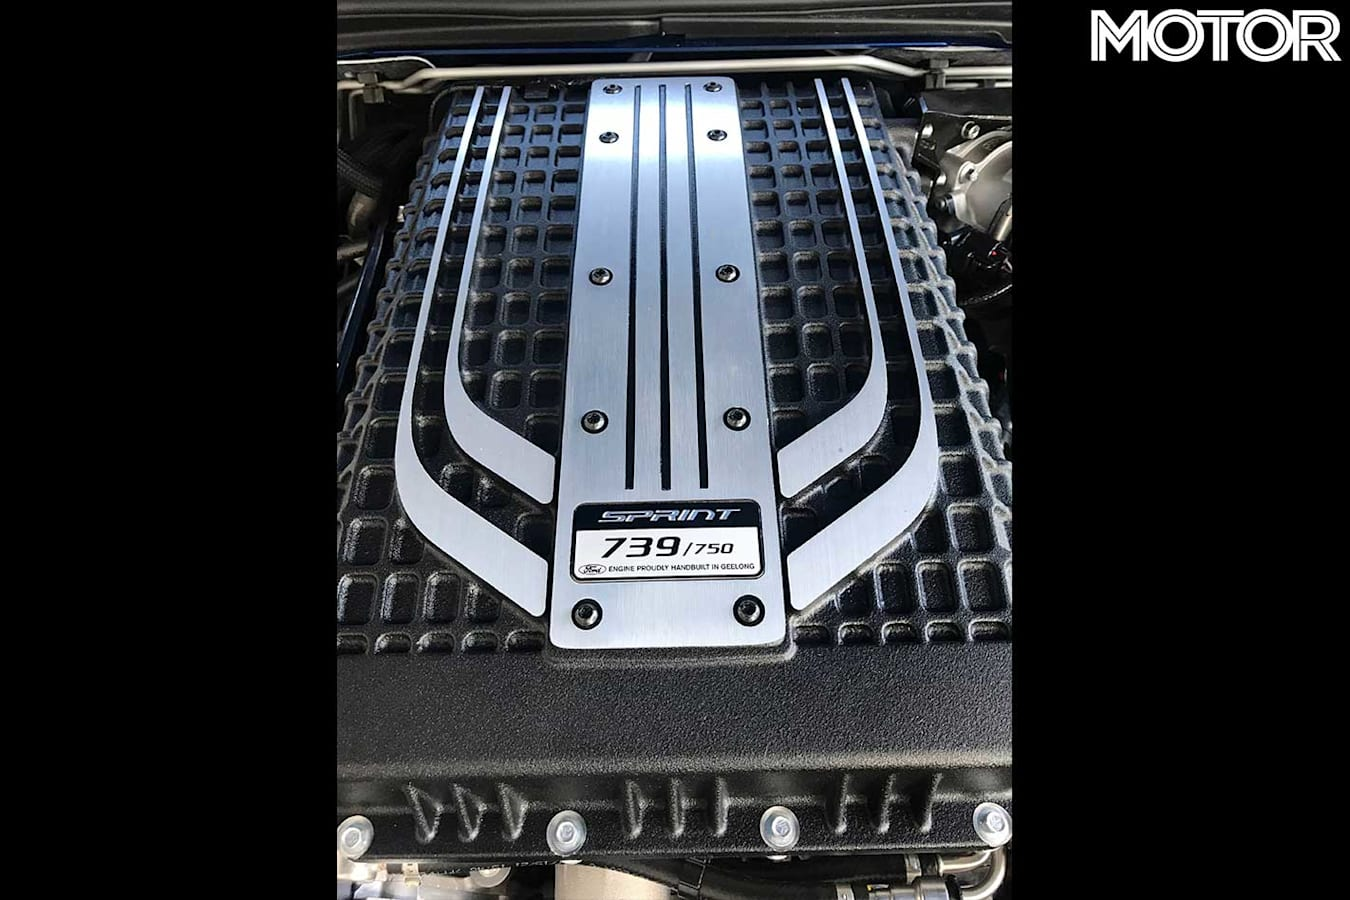 Final Ford Falcon Engine Build Plate Jpg